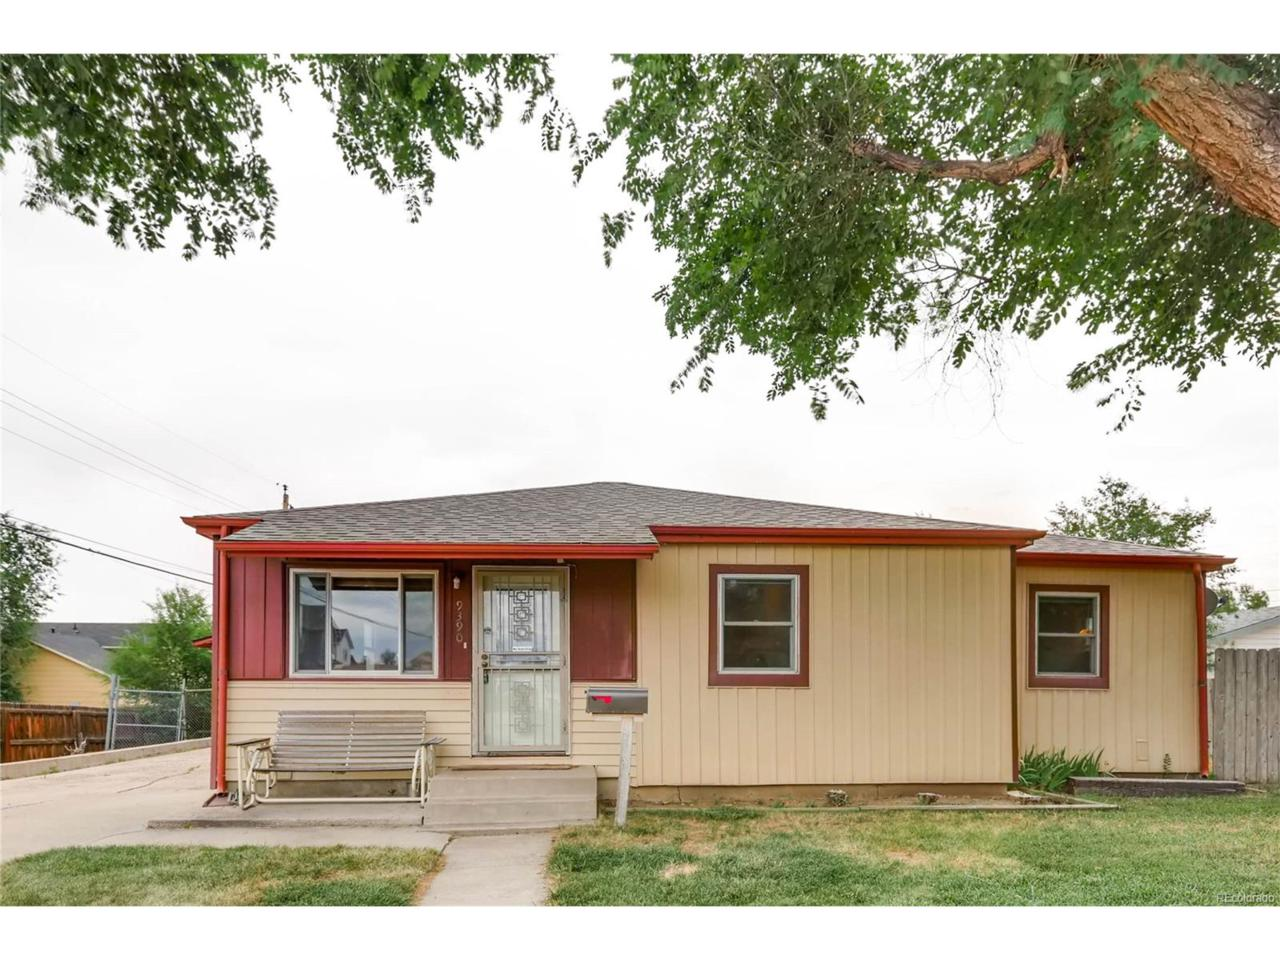 9390 Anderson Street, Thornton, CO 80229 (MLS #3215235) :: 8z Real Estate